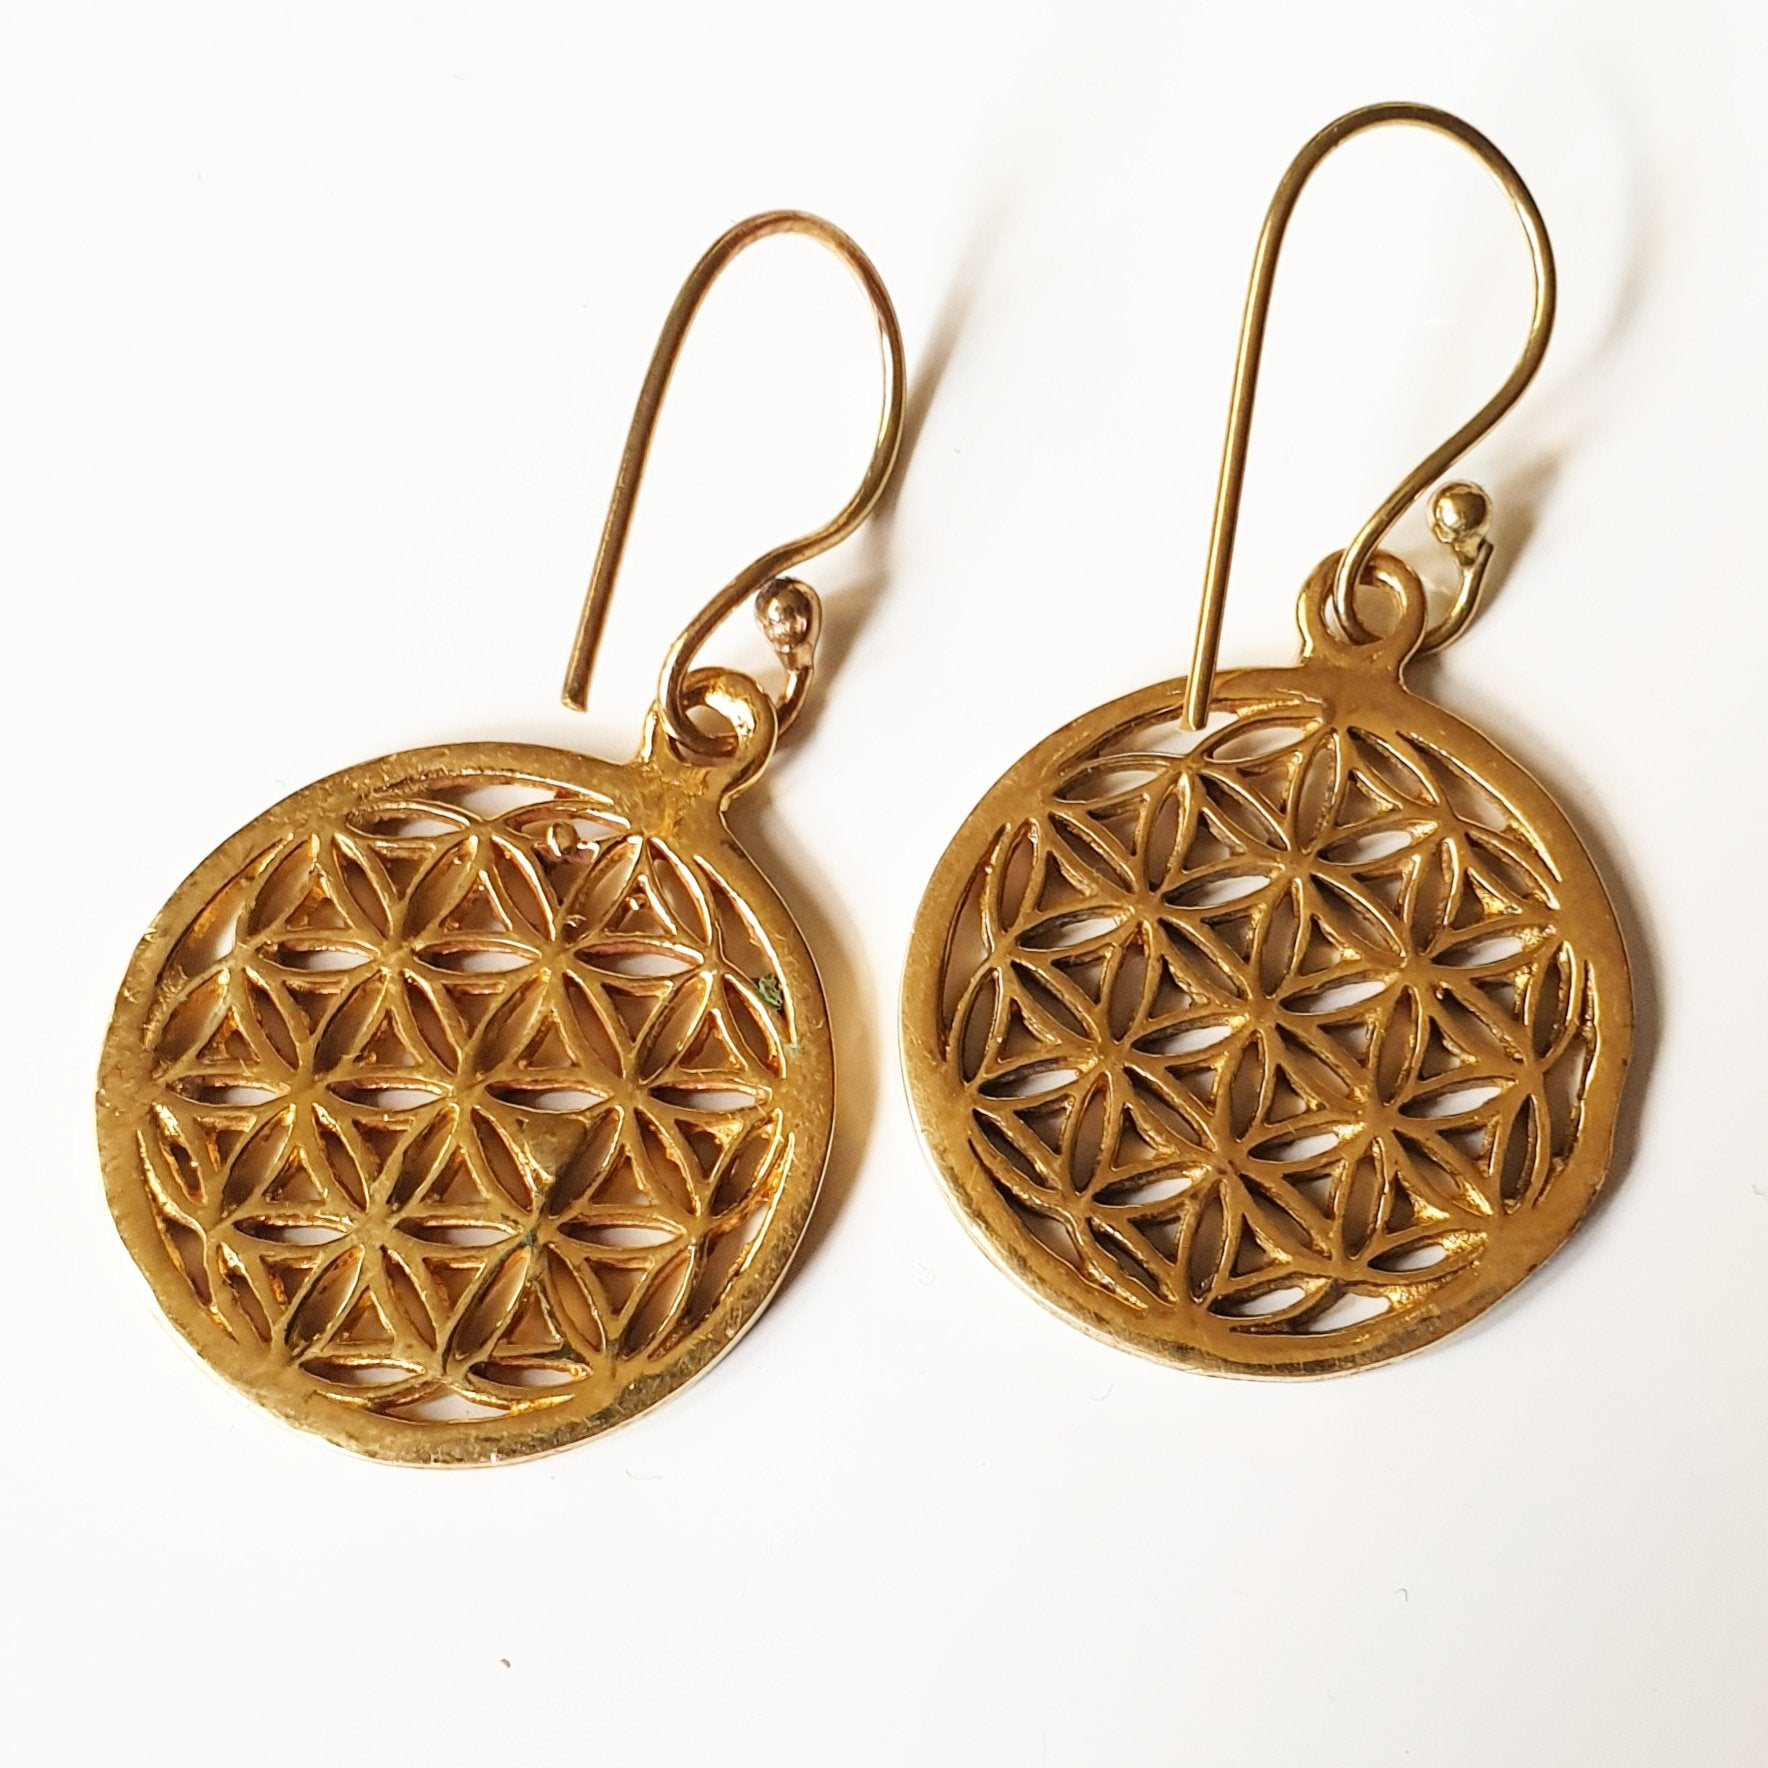 Flower of Life, Liten - Örhängen i mässing